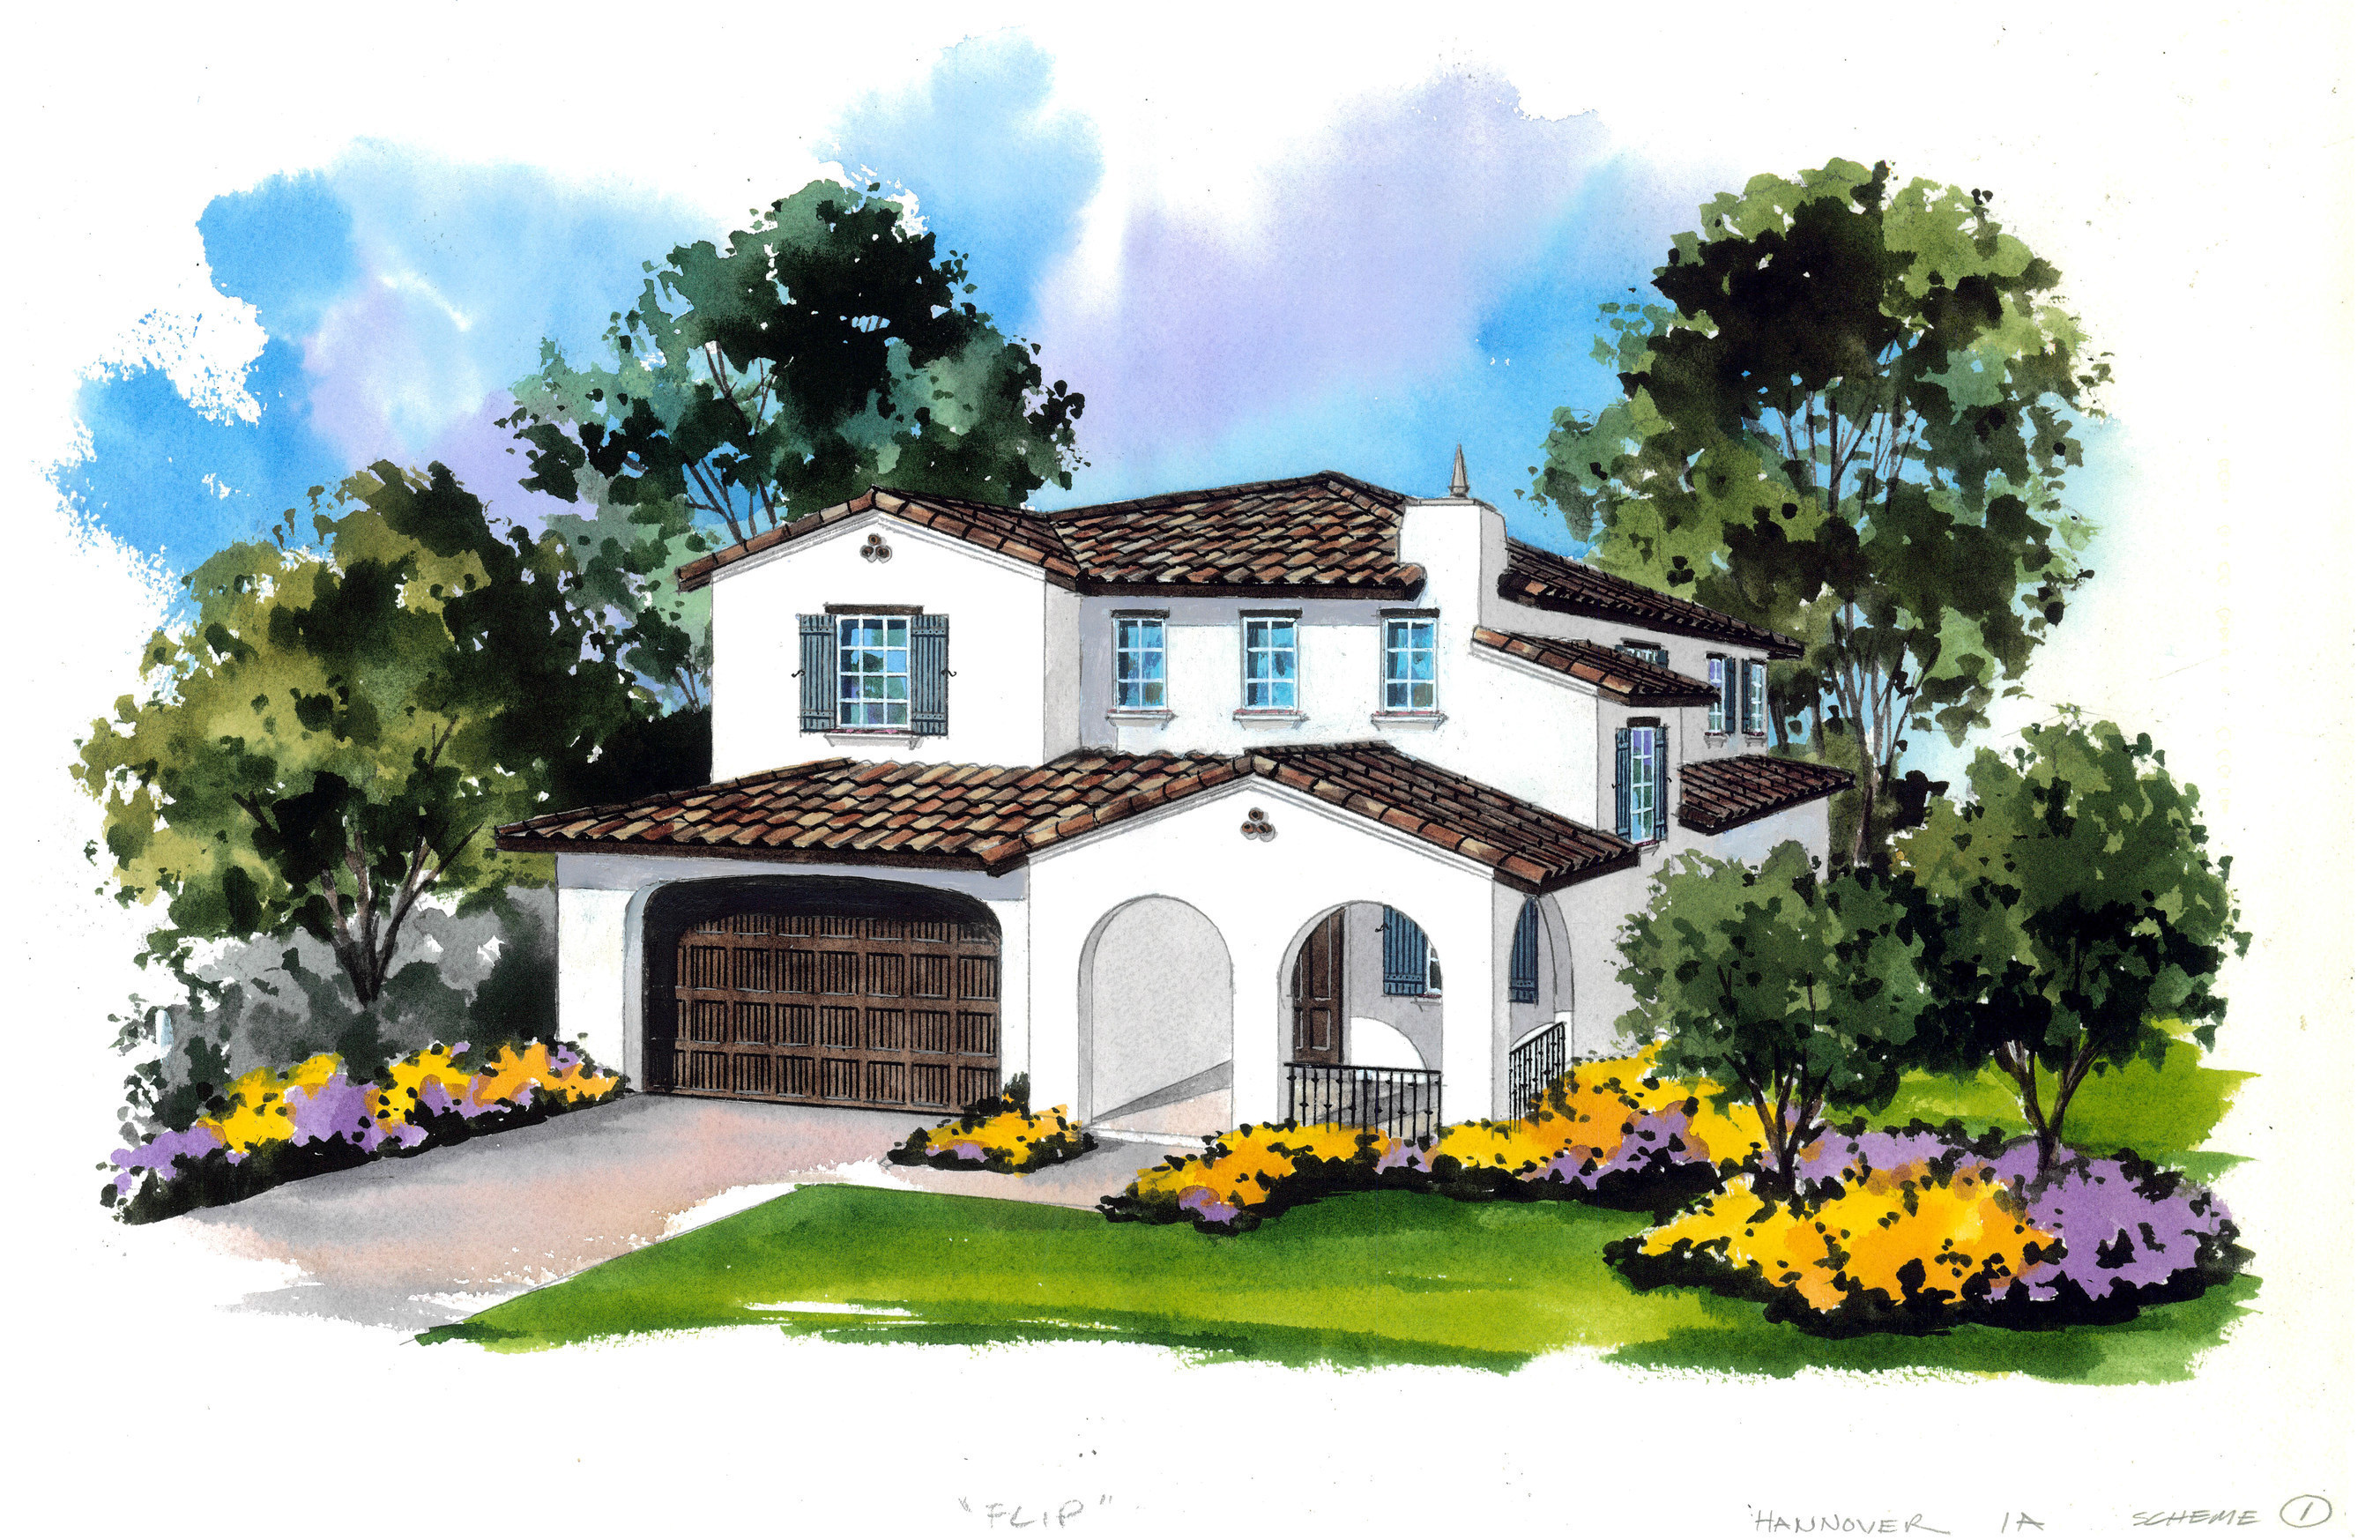 Standard Pacific Homes Introduces New Home Community In